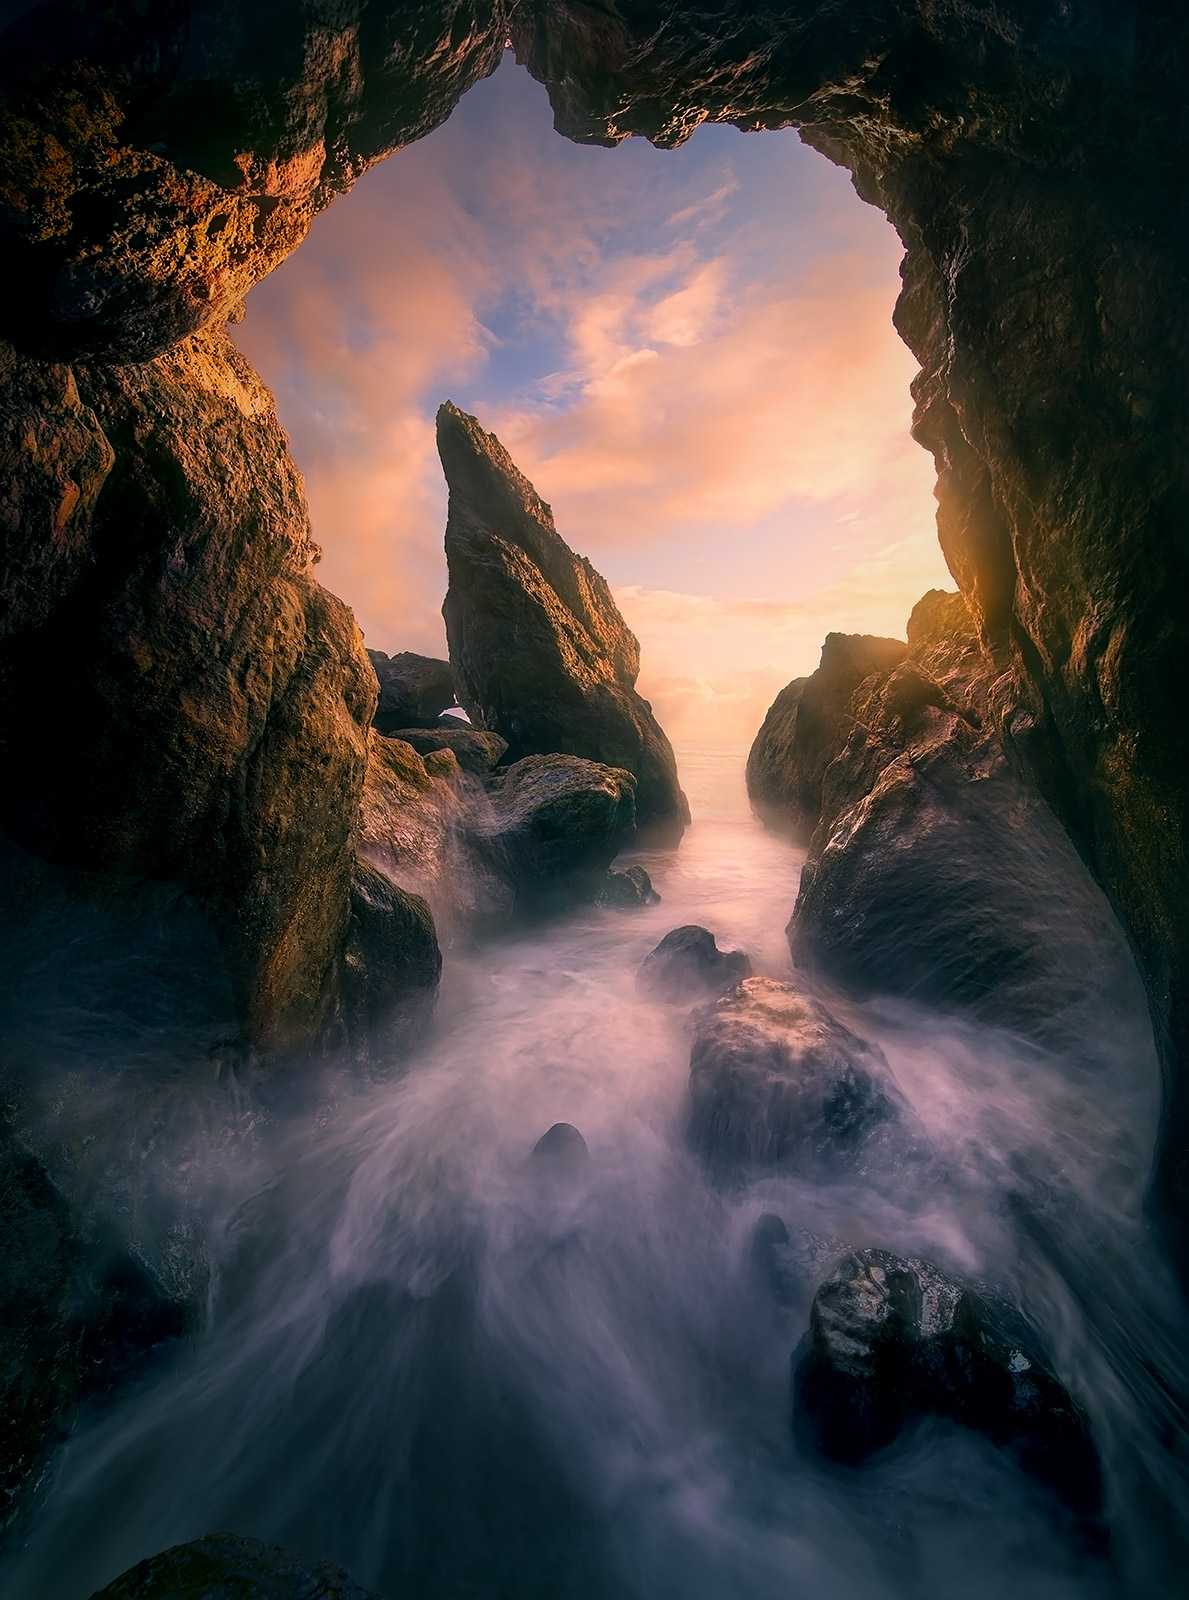 Ocean, Cave, Washington, Sunset, Coast, photo